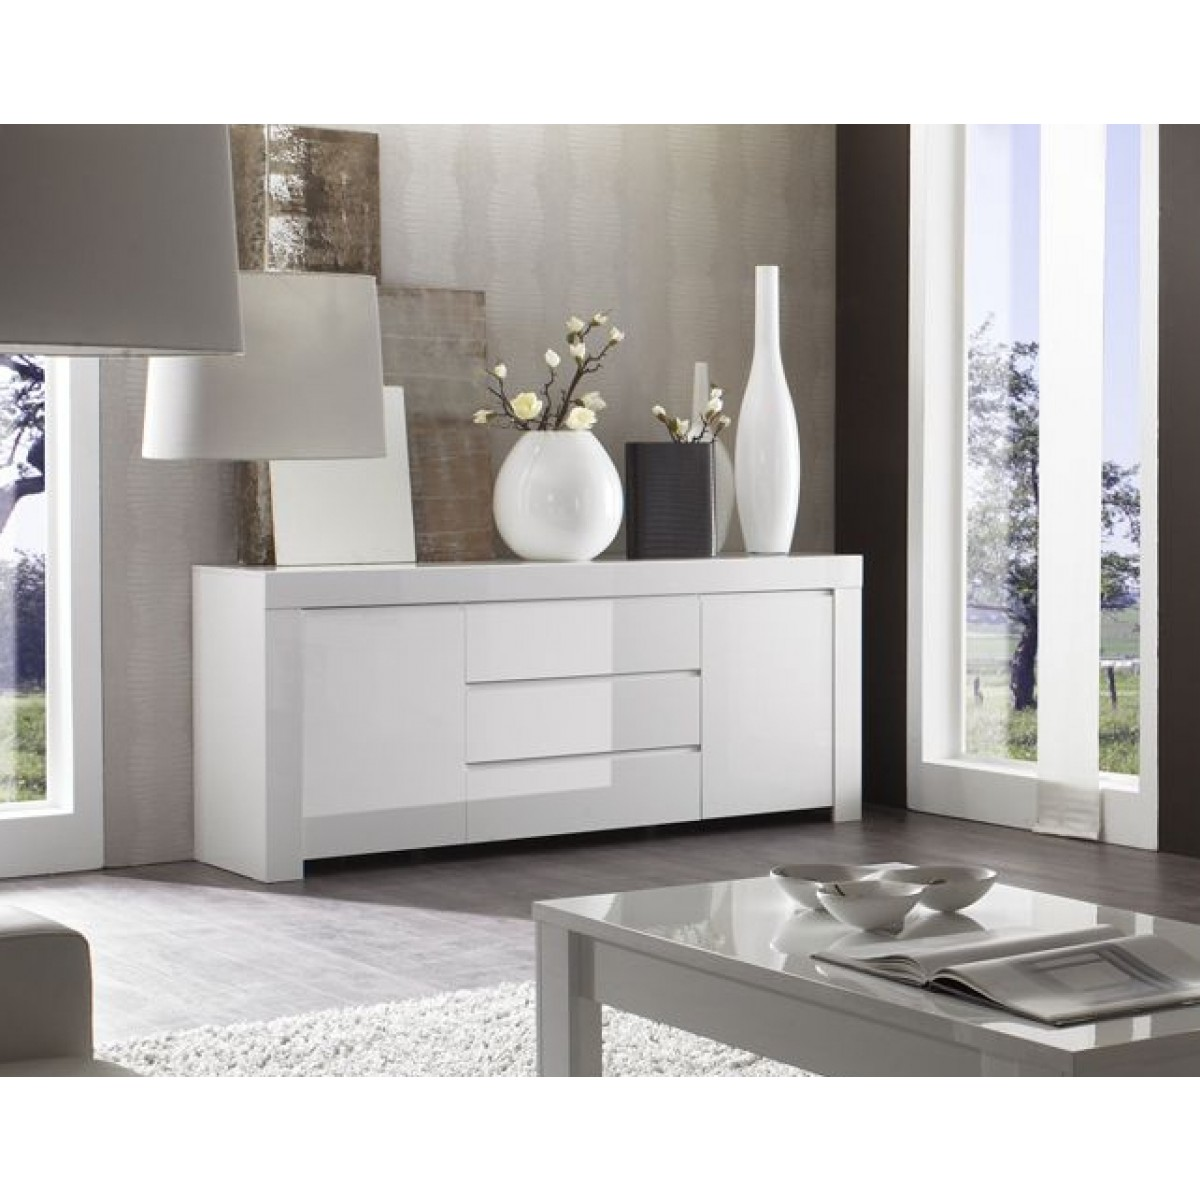 Stunning buffet laqu blanc images for Meuble tele laque blanc ikea